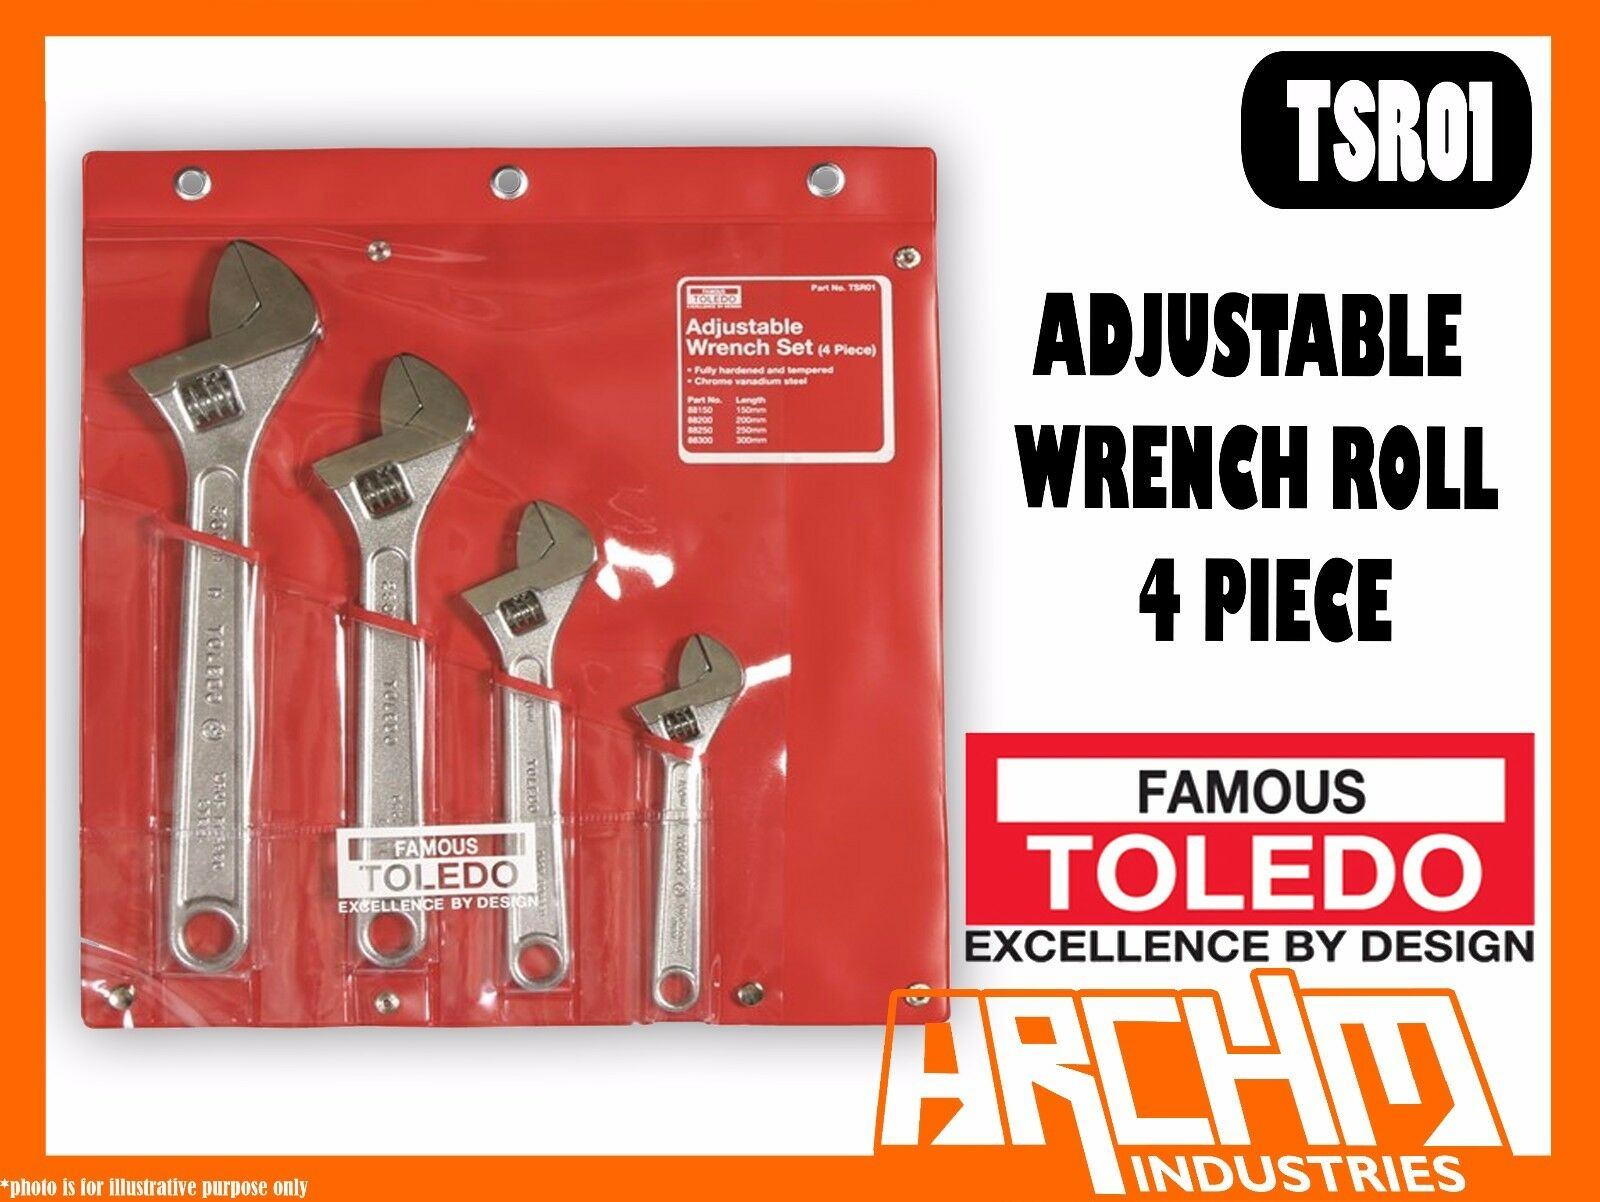 TOLEDO TSR01 - ADJUSTABLE WRENCH ROLL 4 PIECE SET 150 / 200 / 250 / 300MM